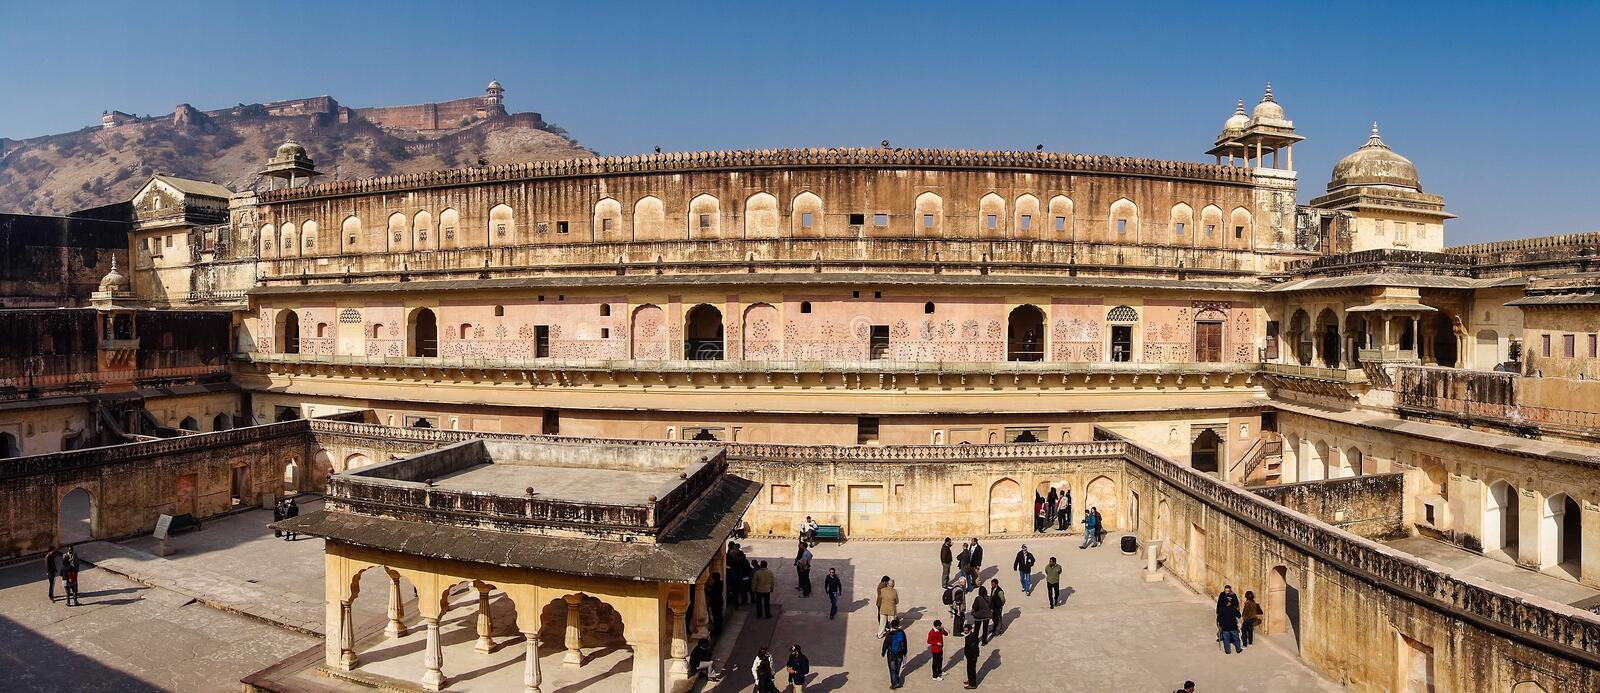 Amber Fort in Jaipur in Rajasthan, India royalty free stock photo